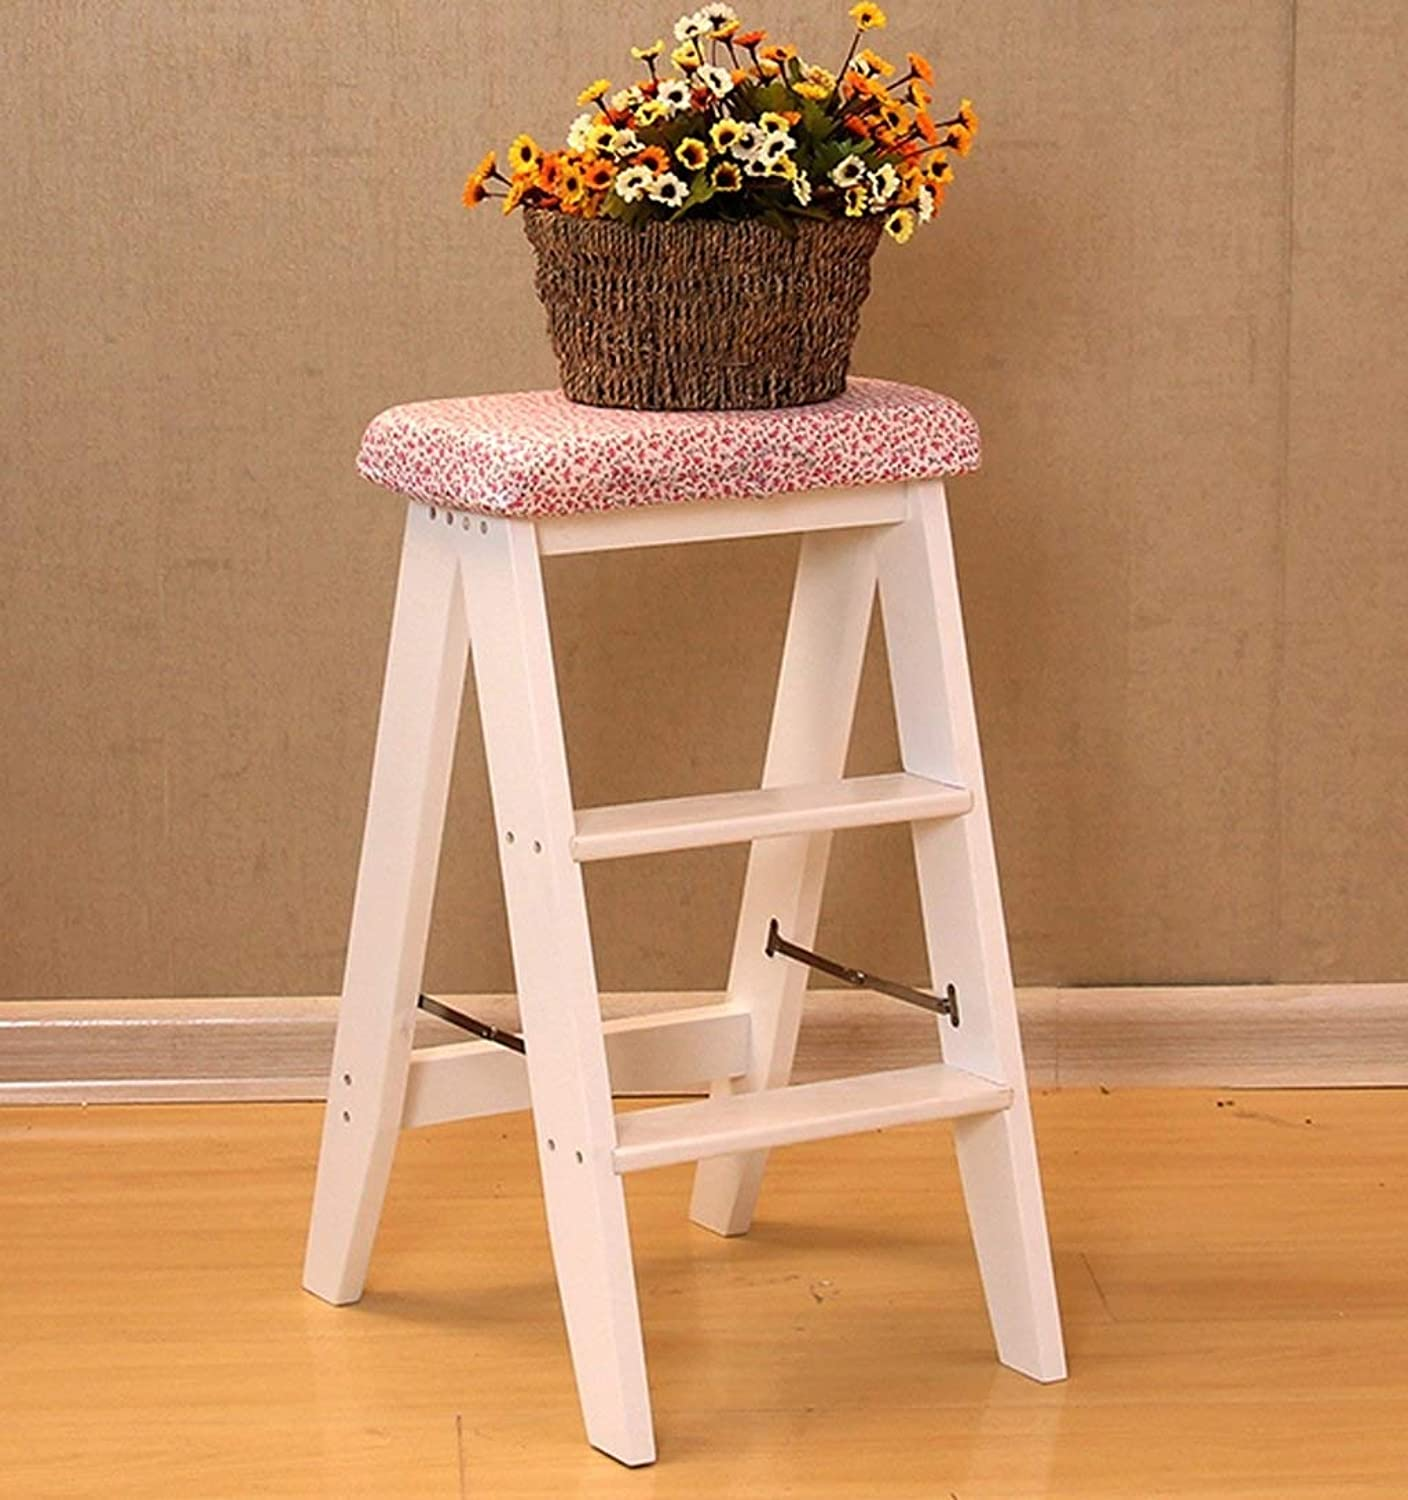 Yalztc-zyq16 Solid Wood Creative Folding Stool Predection Rest Soft Surface Solid Dual-use Step Stool Kitchen Stool Portable Stool Home Small Ladder (color   C)